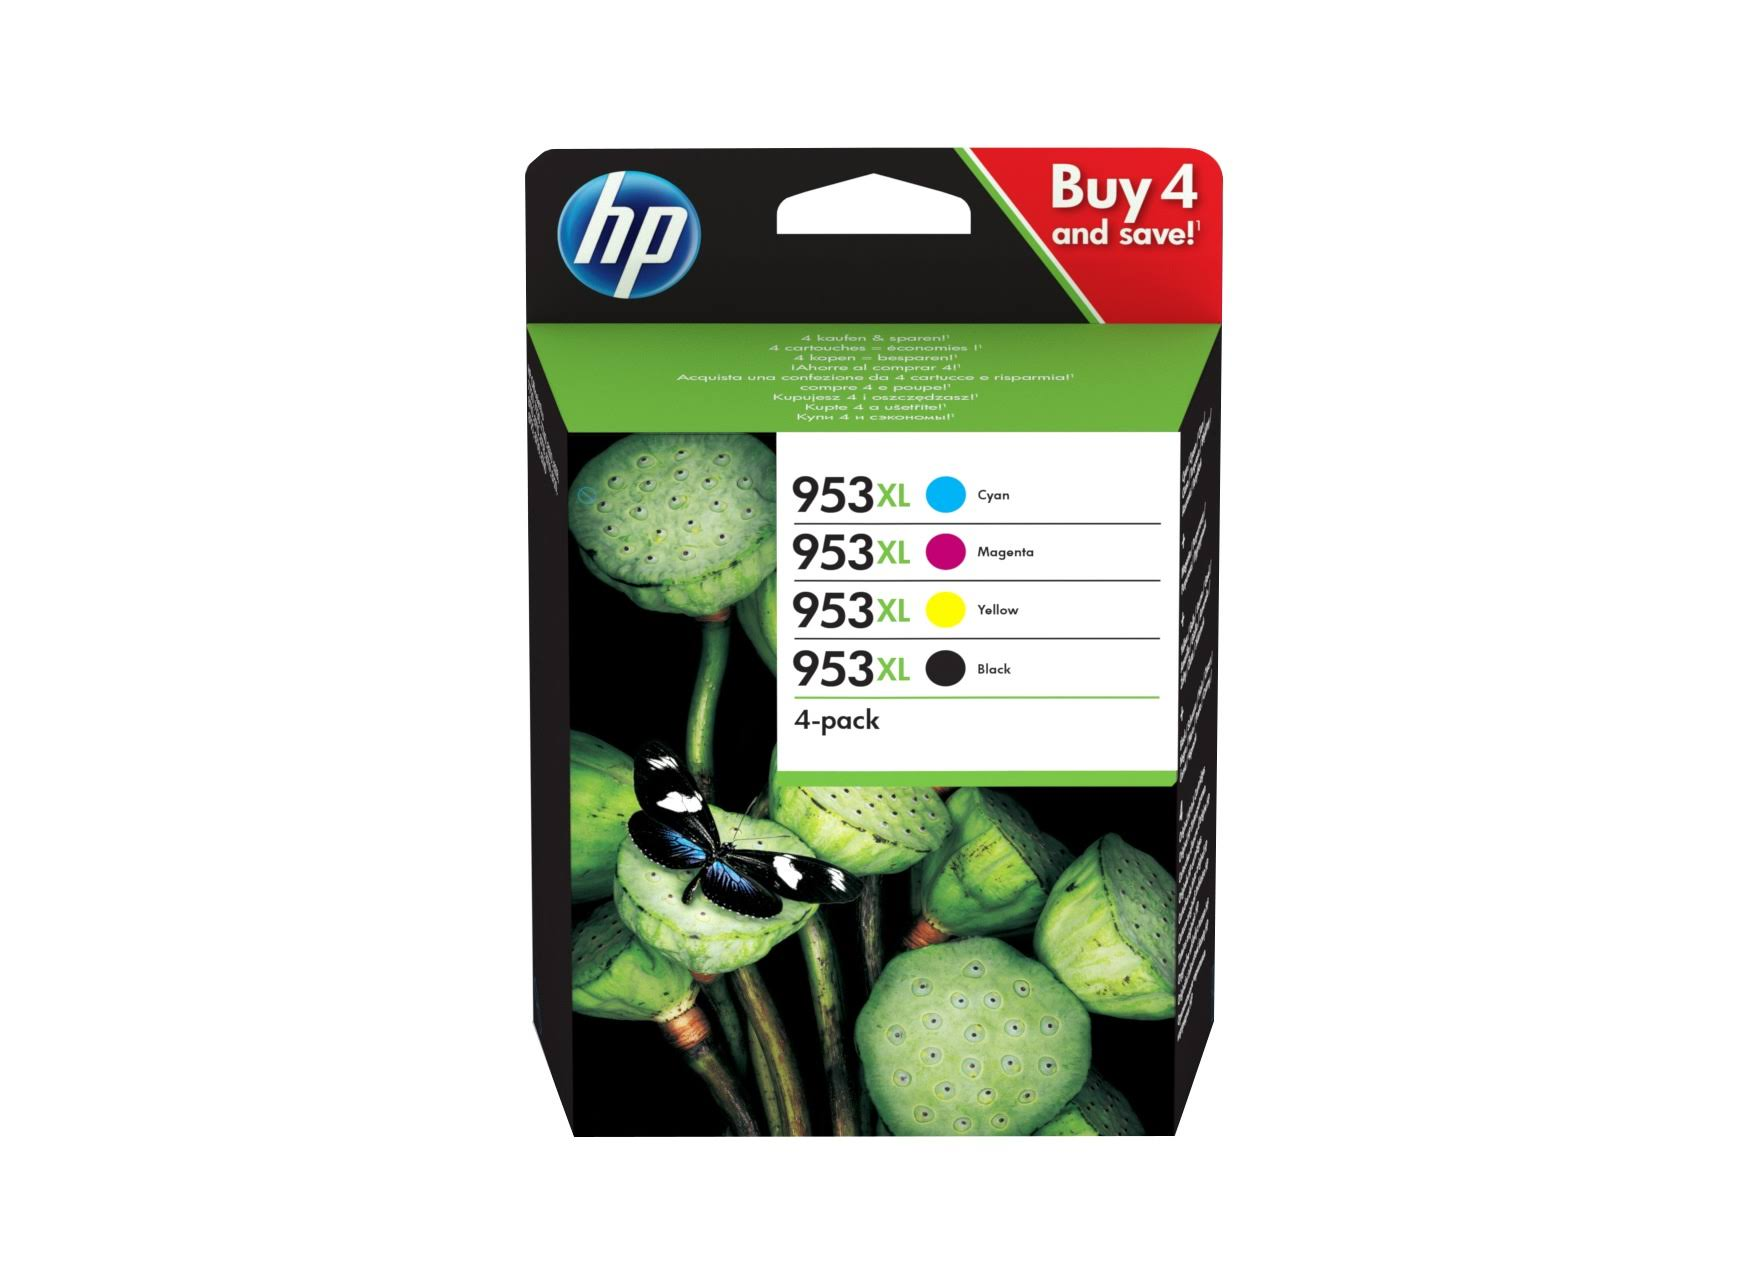 HP 953XL High Yield Ink Cartridge - CMY, 1,600 Pages, 4pk